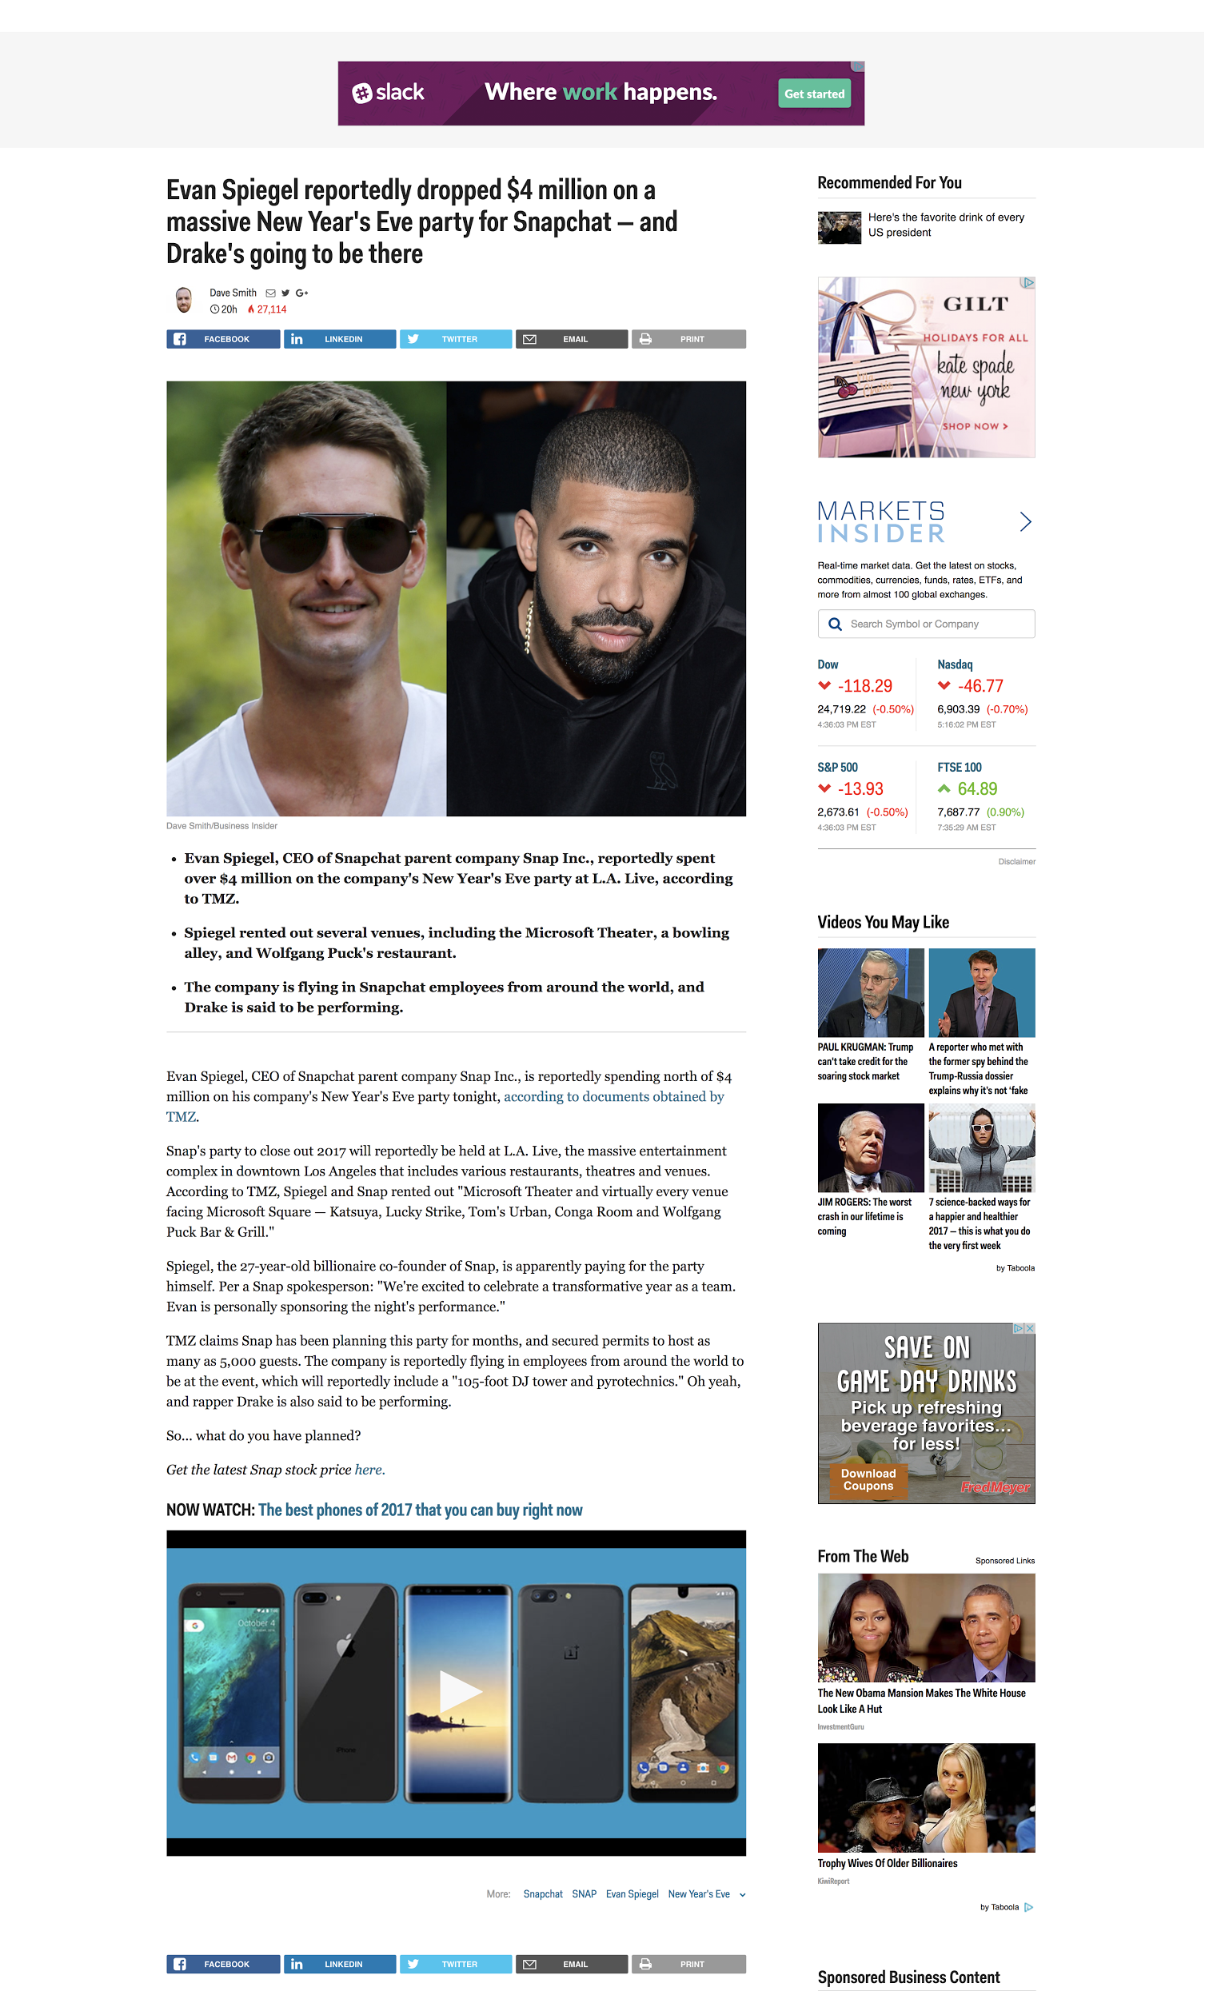 Business Insider blog page with social sharing buttons at the top and bottom of the page.